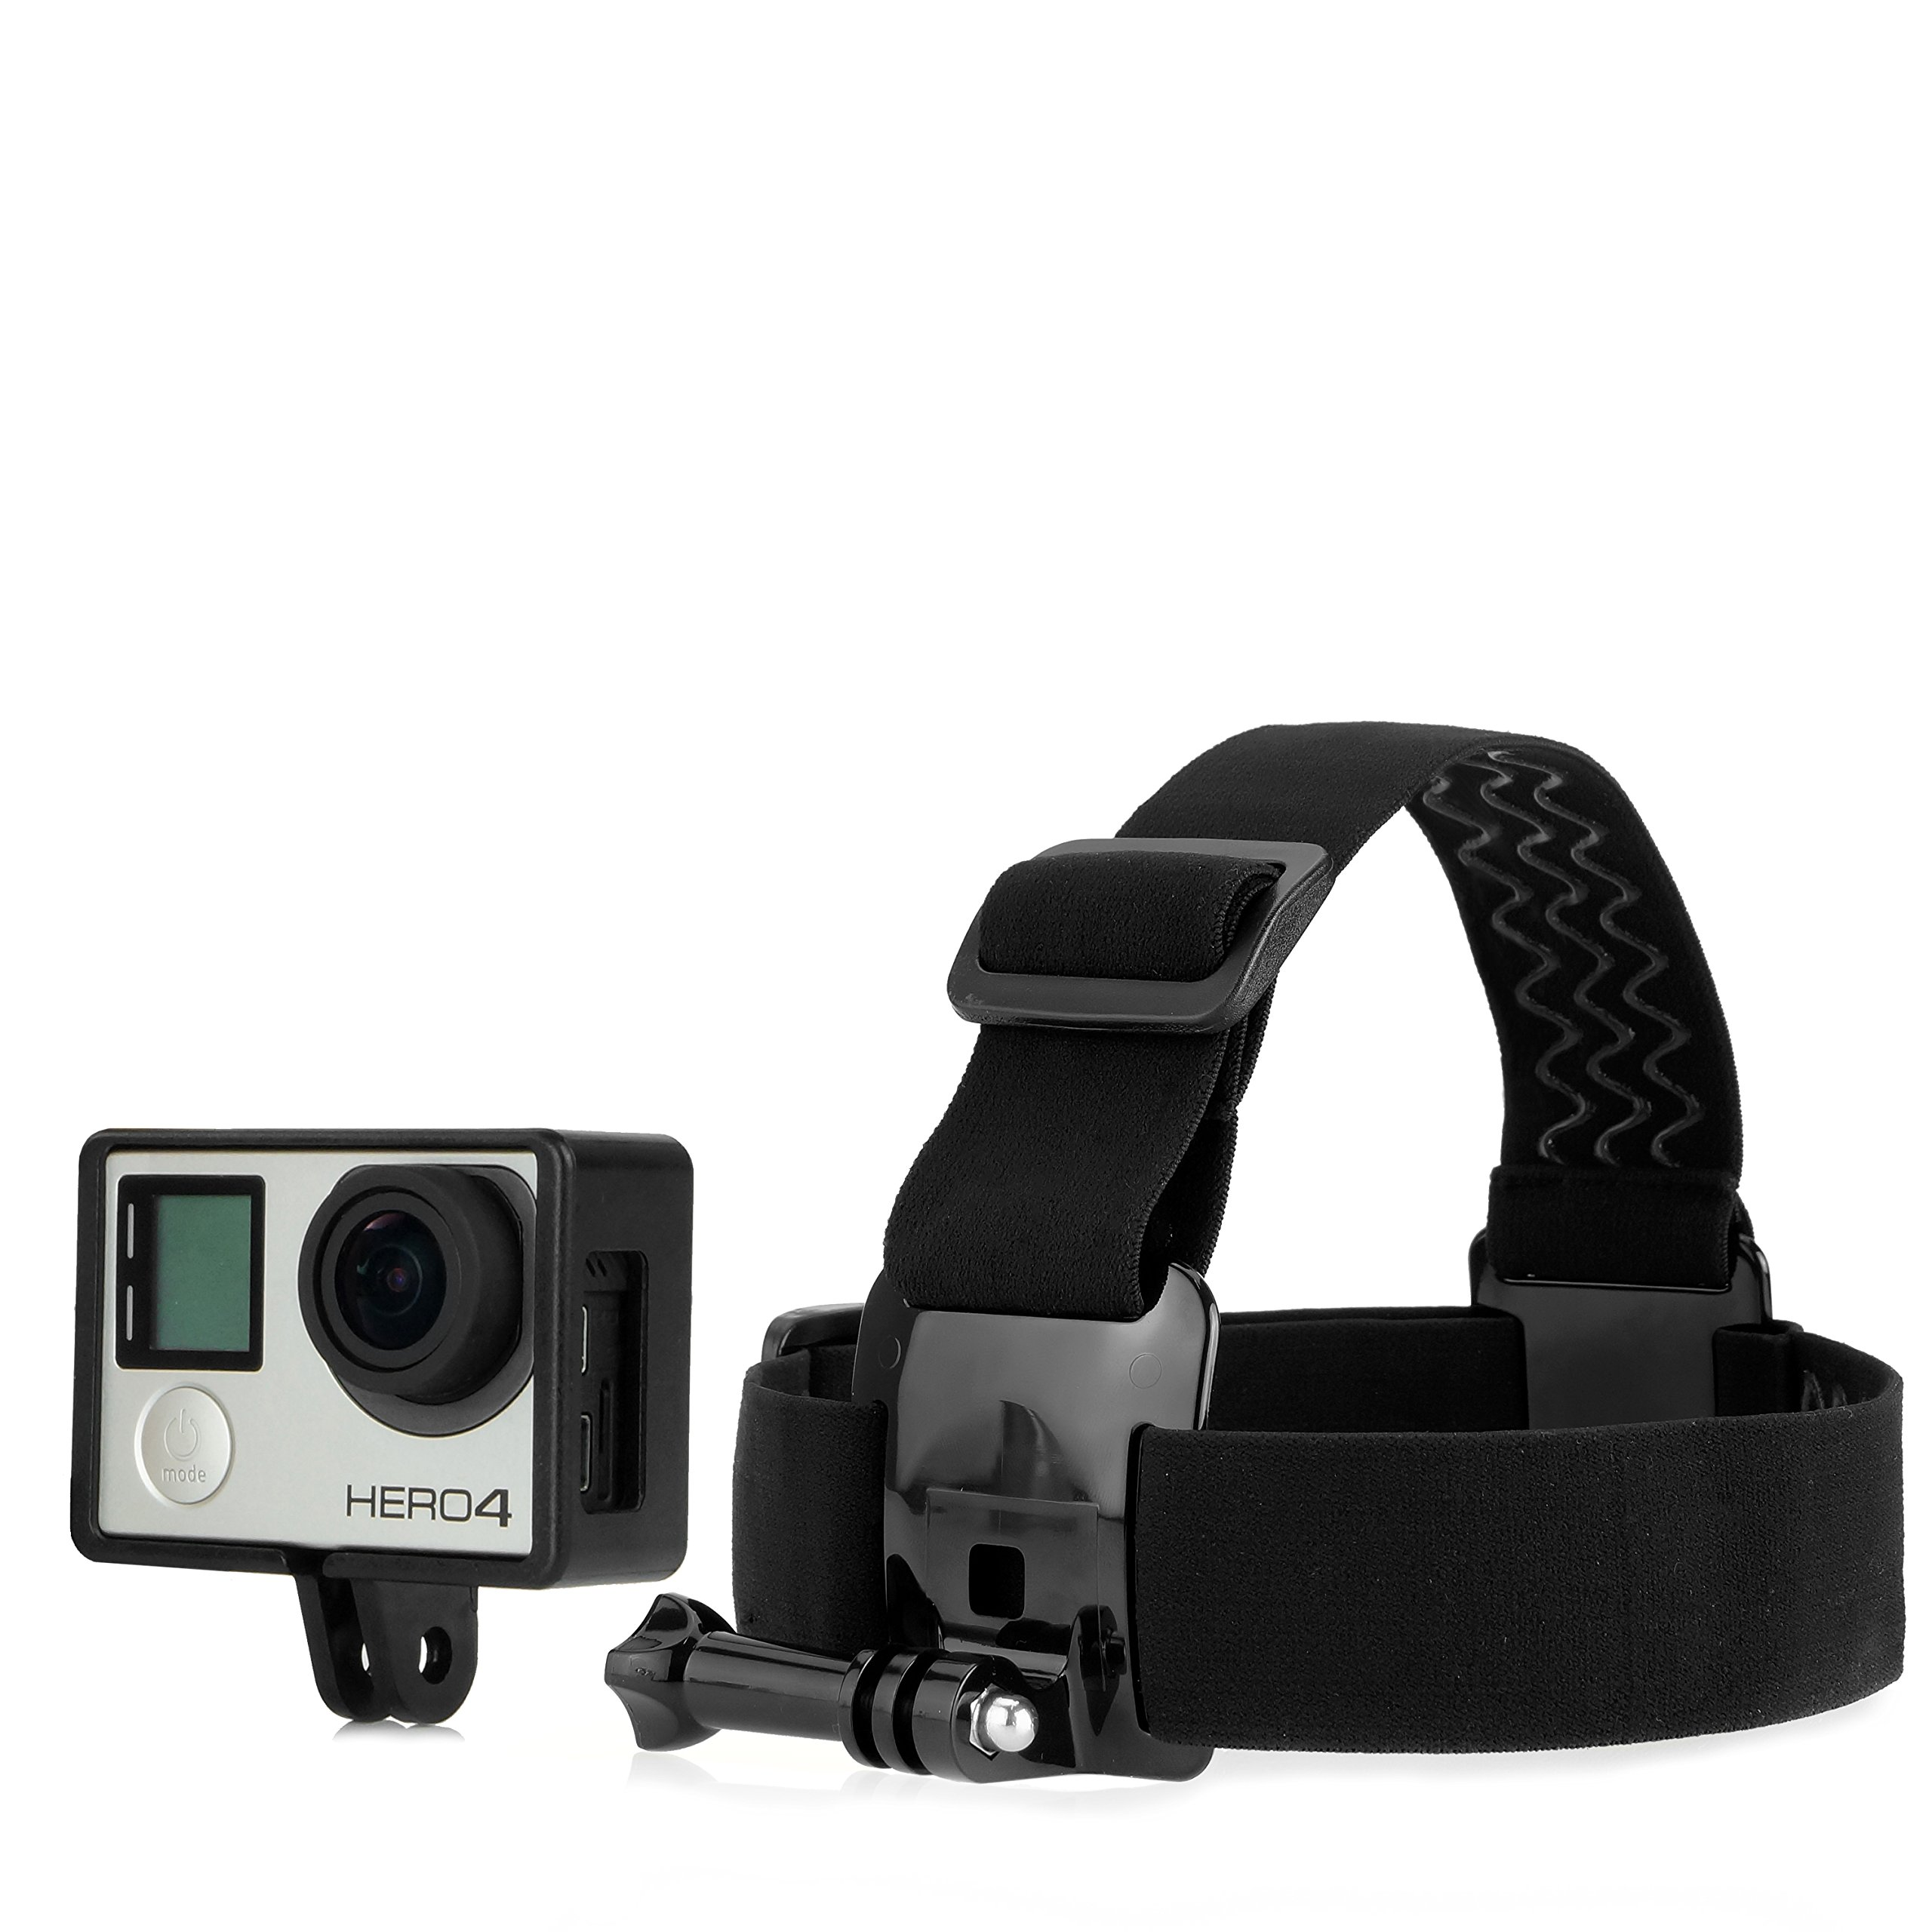 CamKix Head Strap Frame Mount Bundle for Gopro Hero 4, Black, Silver, 3+, 3 - Comfortable - Optimal Sound Capture - Includes also Large Thumbscrew / Lens Cap / UV Filter Lens by CamKix